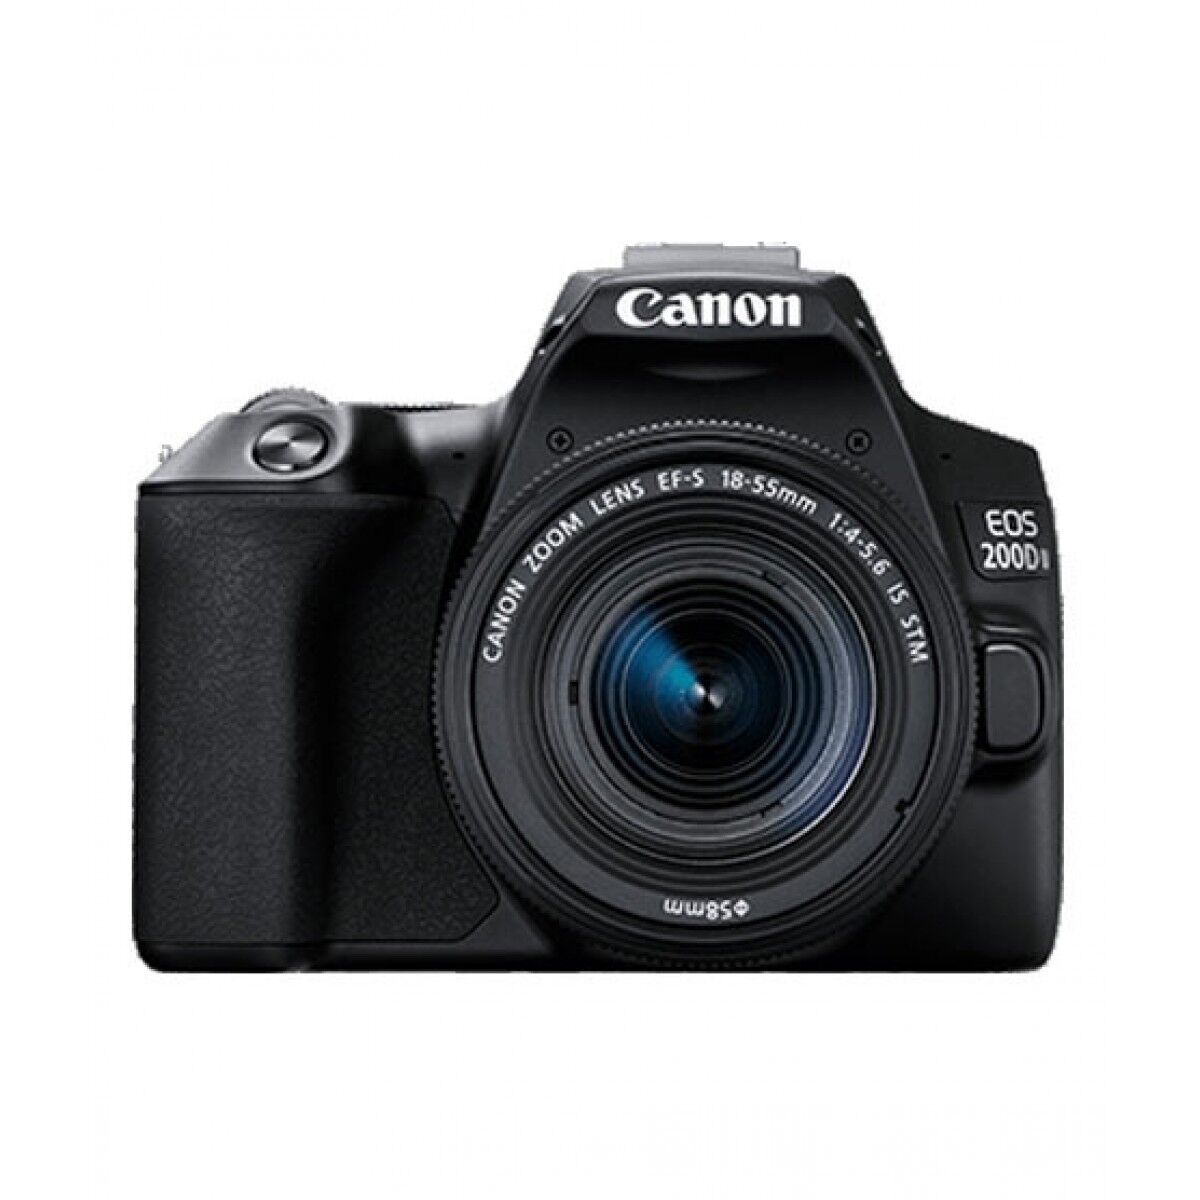 Canon EOS 200D II DSLR Camera With EF-S 18-55mm IS STM Lens